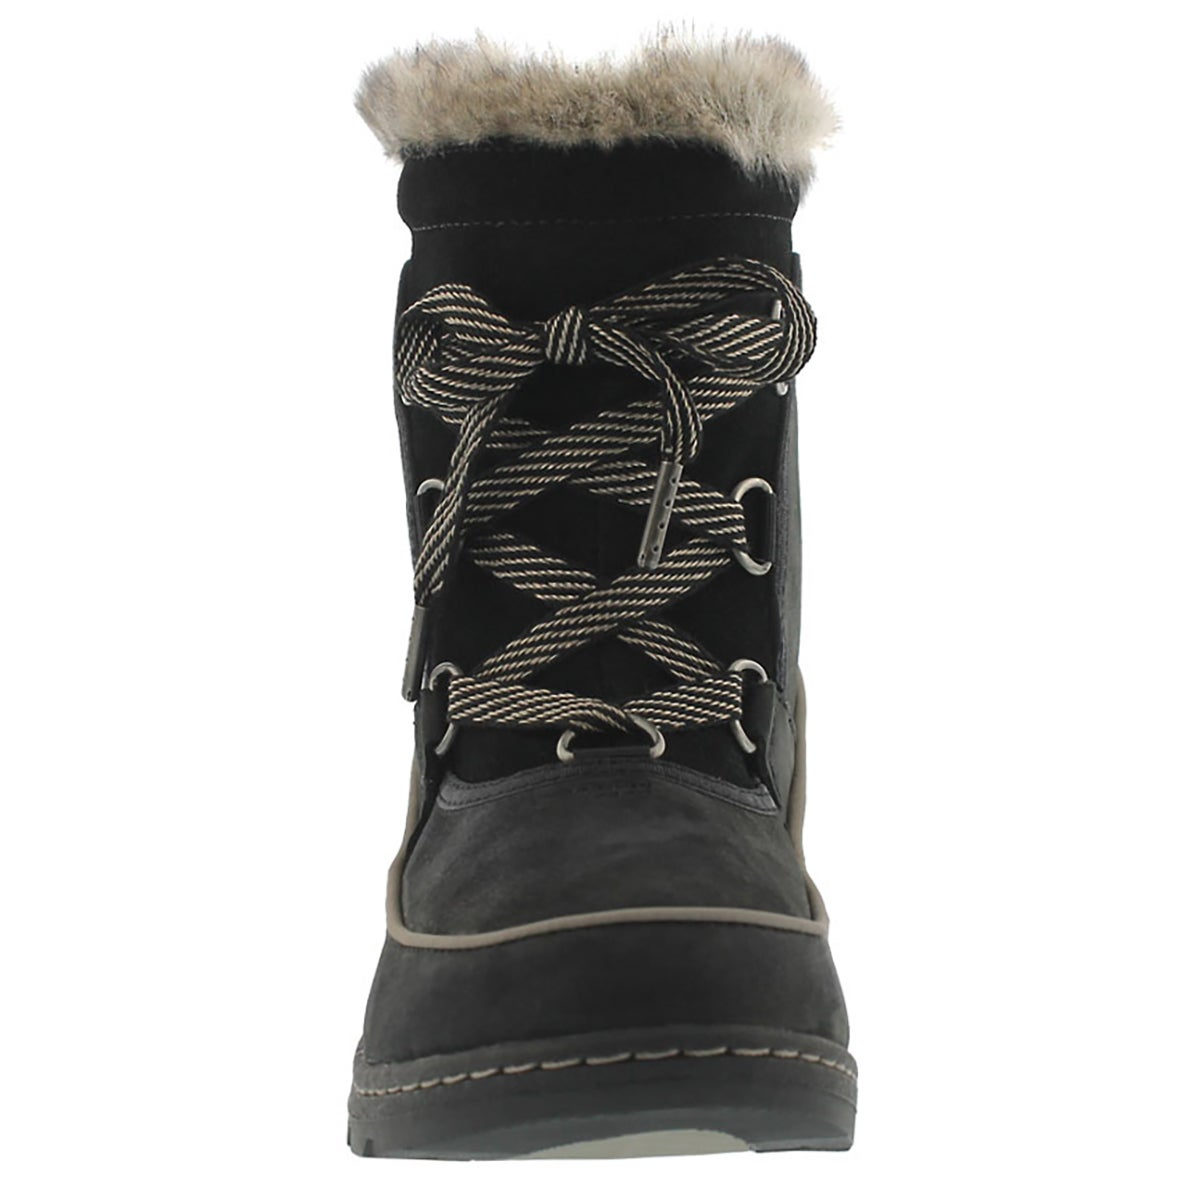 Lds Tivoli III Premium blk winter boot